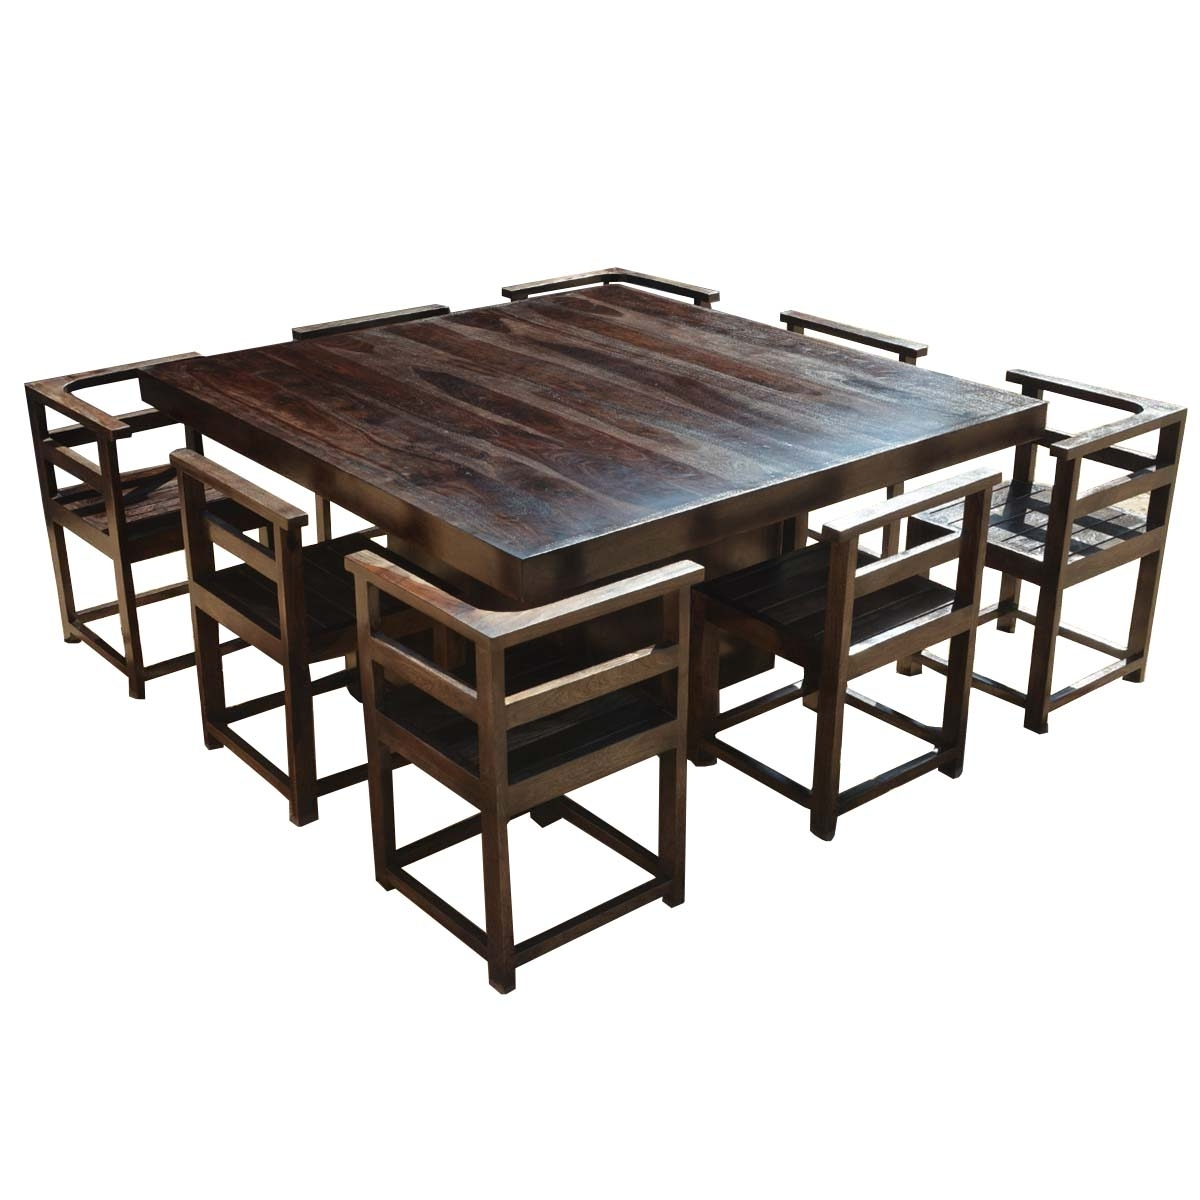 "Modern Rustic Solid Wood 64"" Square Pedestal Dining Table & 8 Chairs With Well Known Dining Tables And 8 Chairs (View 25 of 25)"